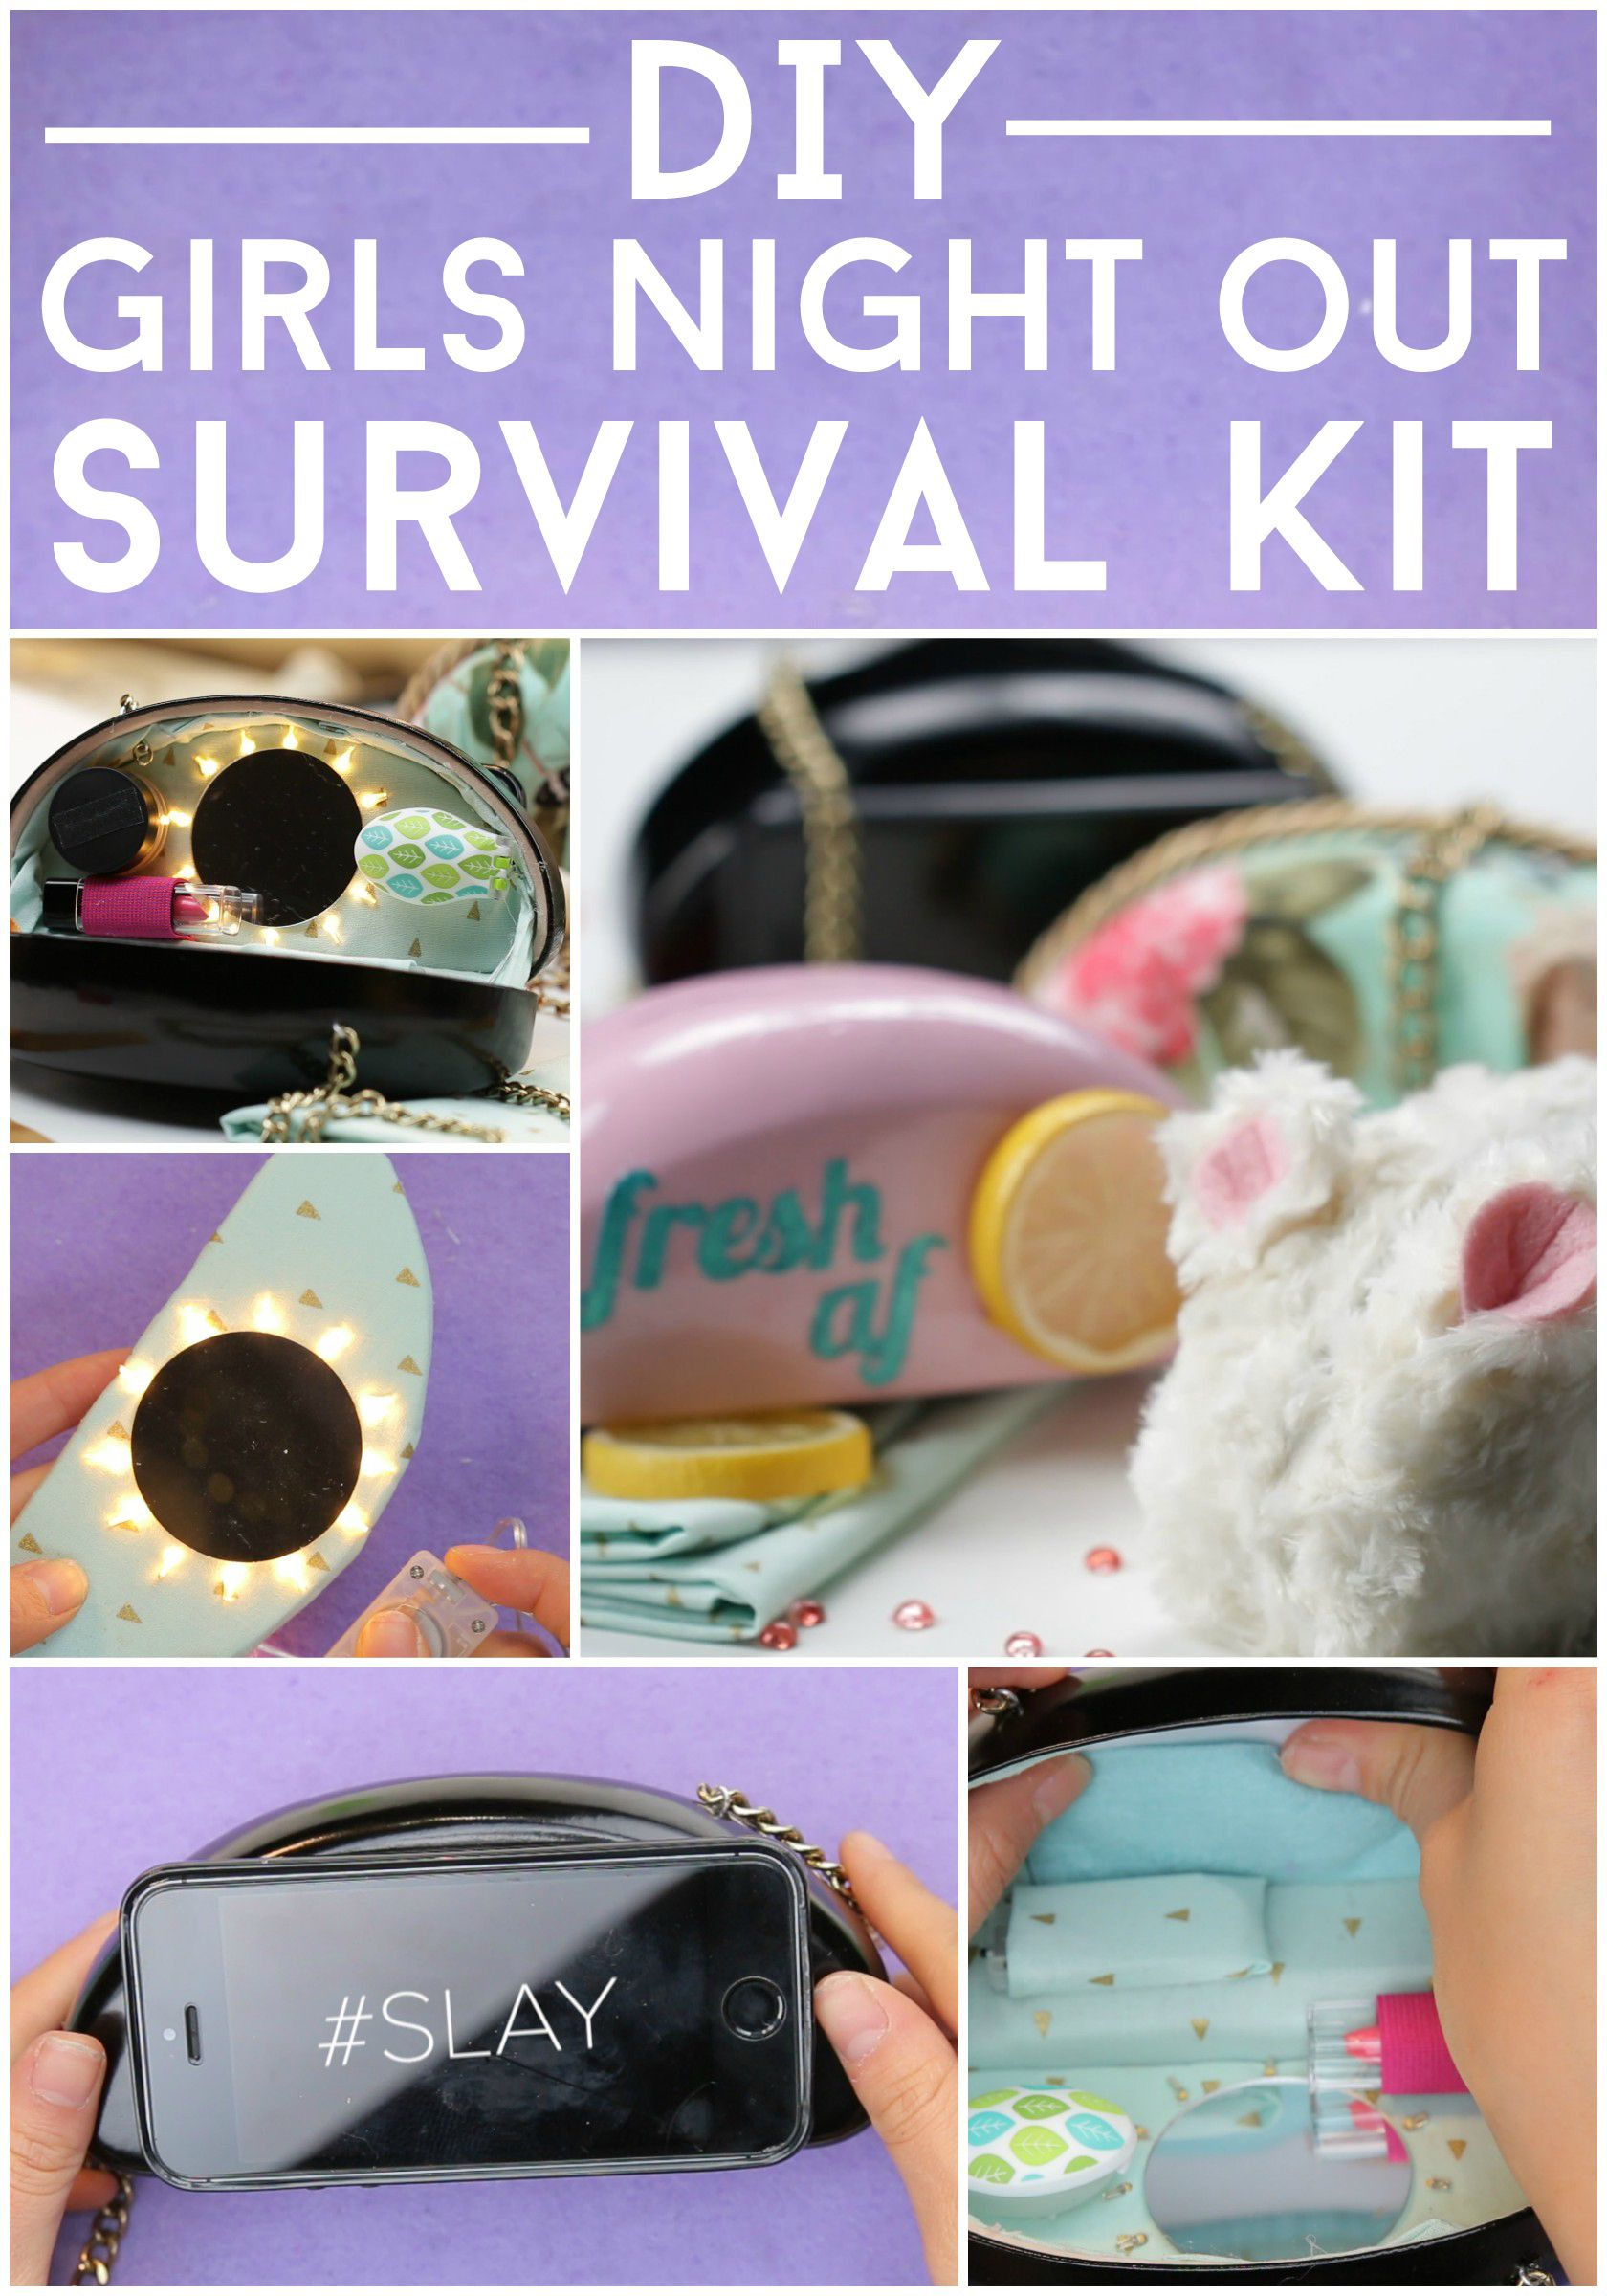 DIY Girls Night Out Survival Kit by Nifty | Nifty Hacks | Pinterest ...